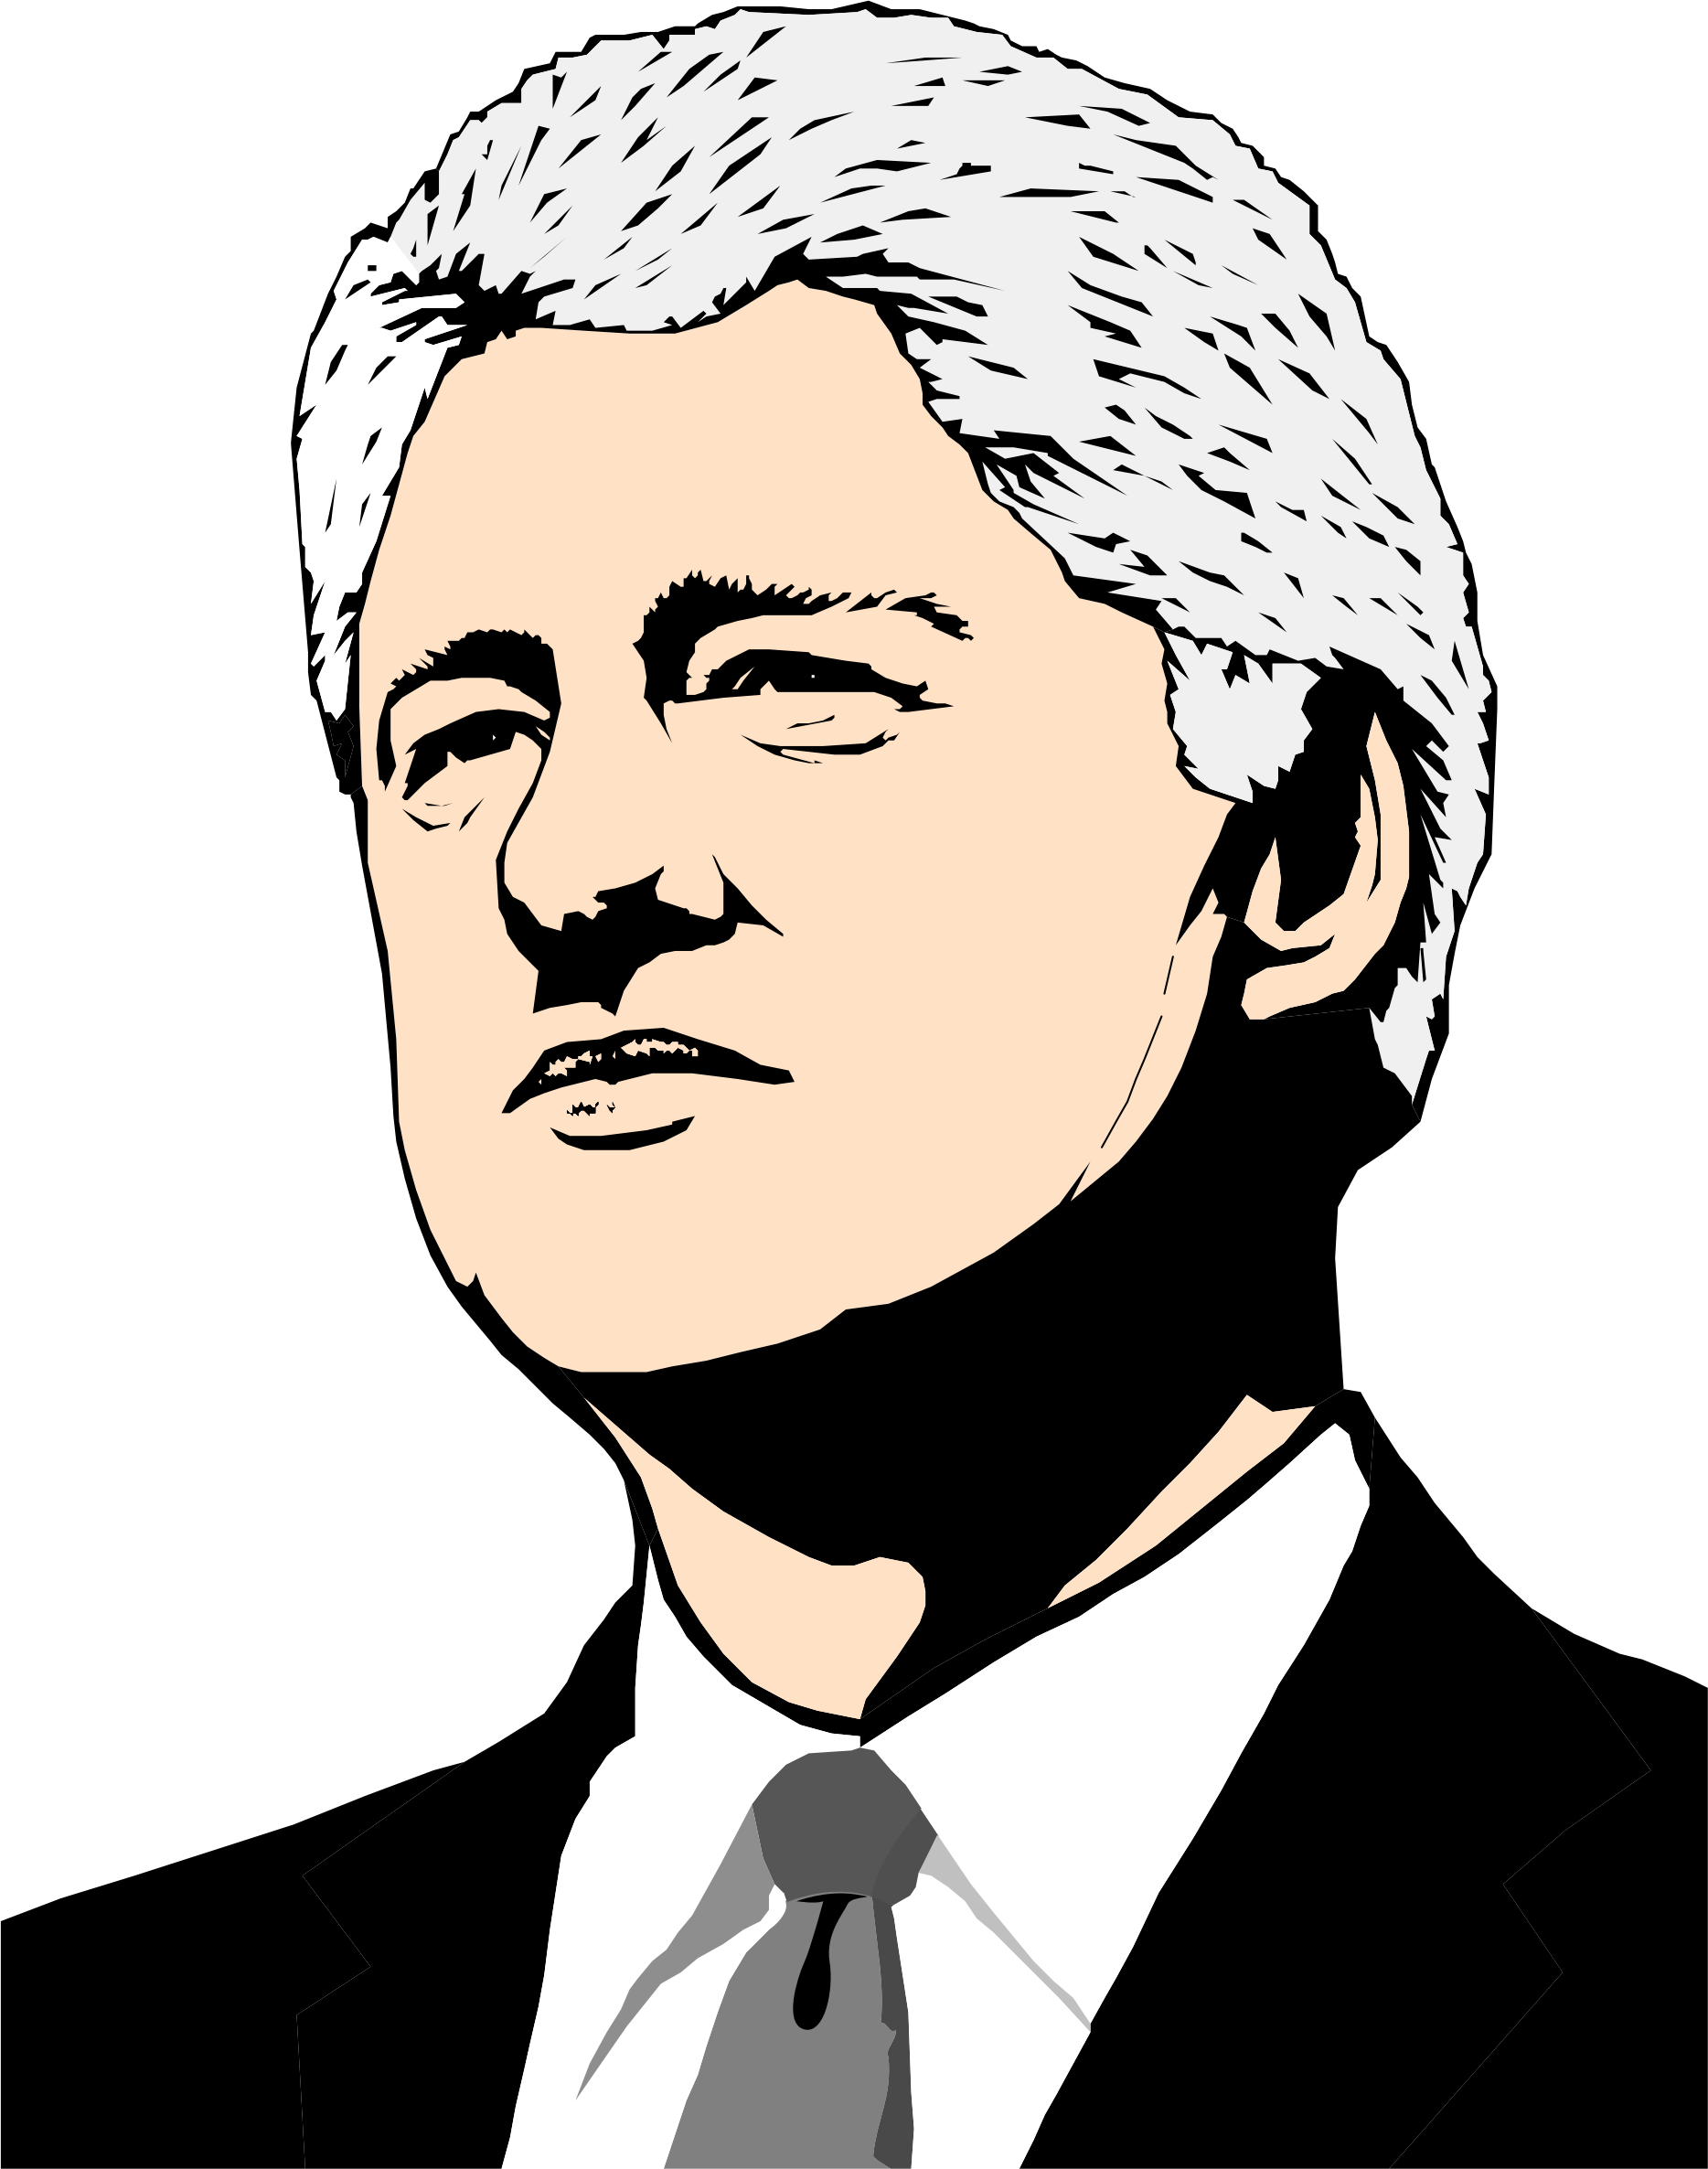 Politician clipart clinton. Bill big image png